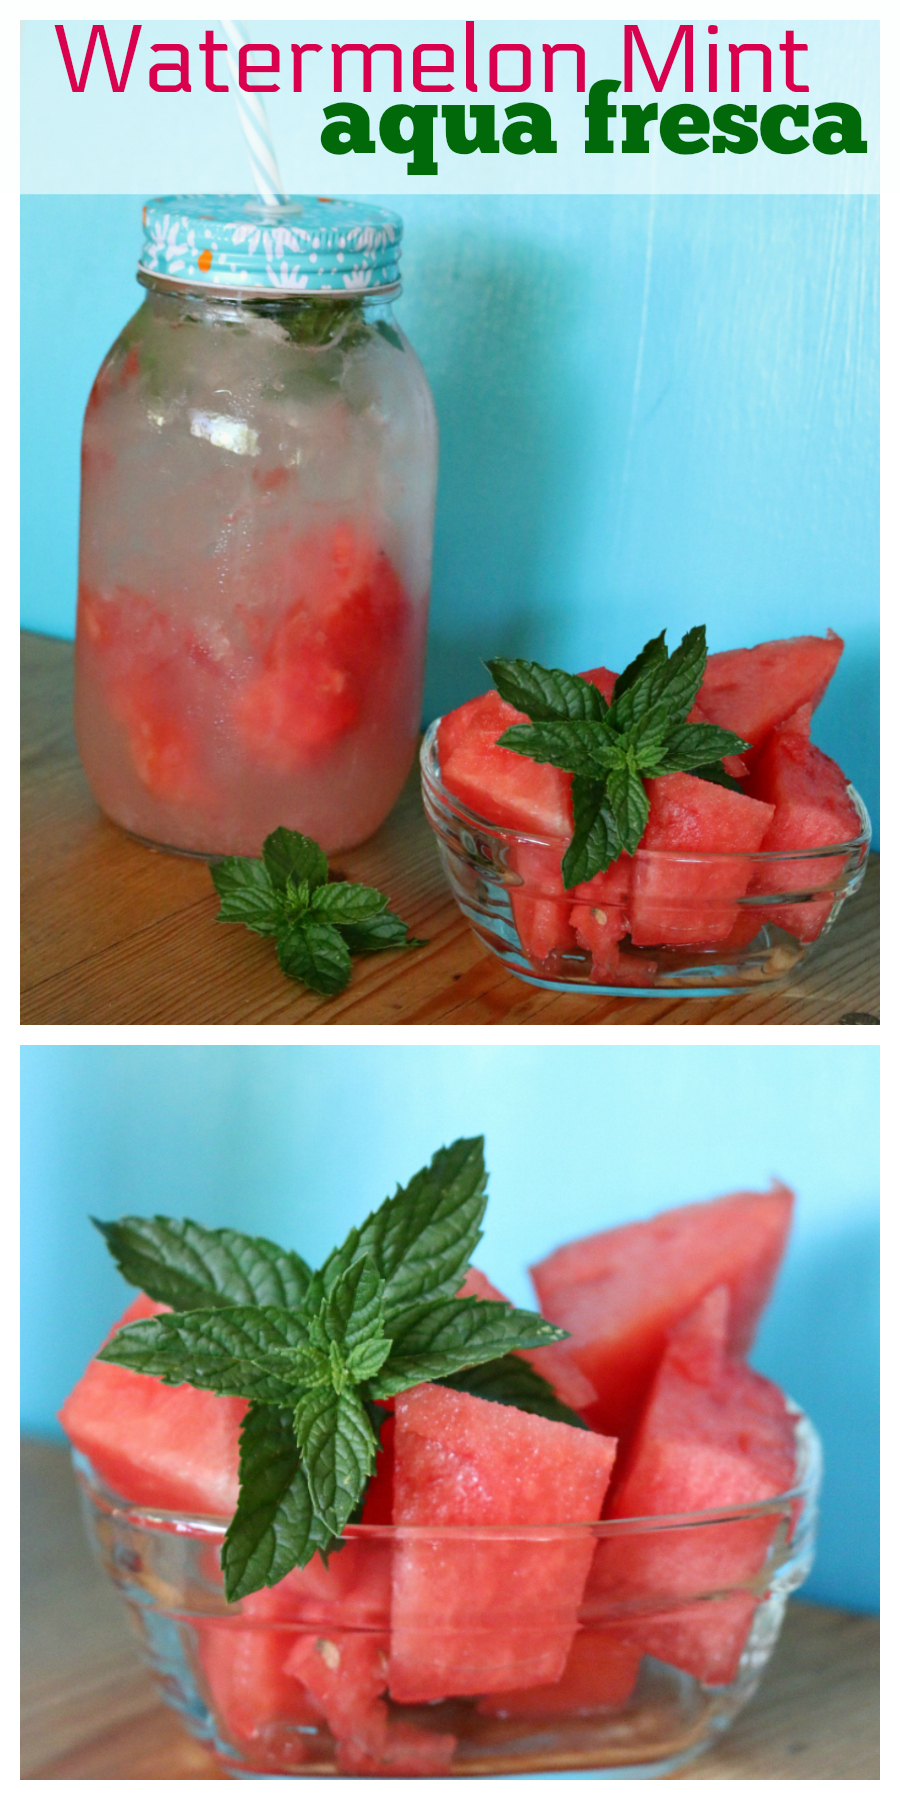 Watermelon Mint Aqua Fresca - a great alternative to soda. | CeceliasGoodStuff.com - Good Food for Good People |